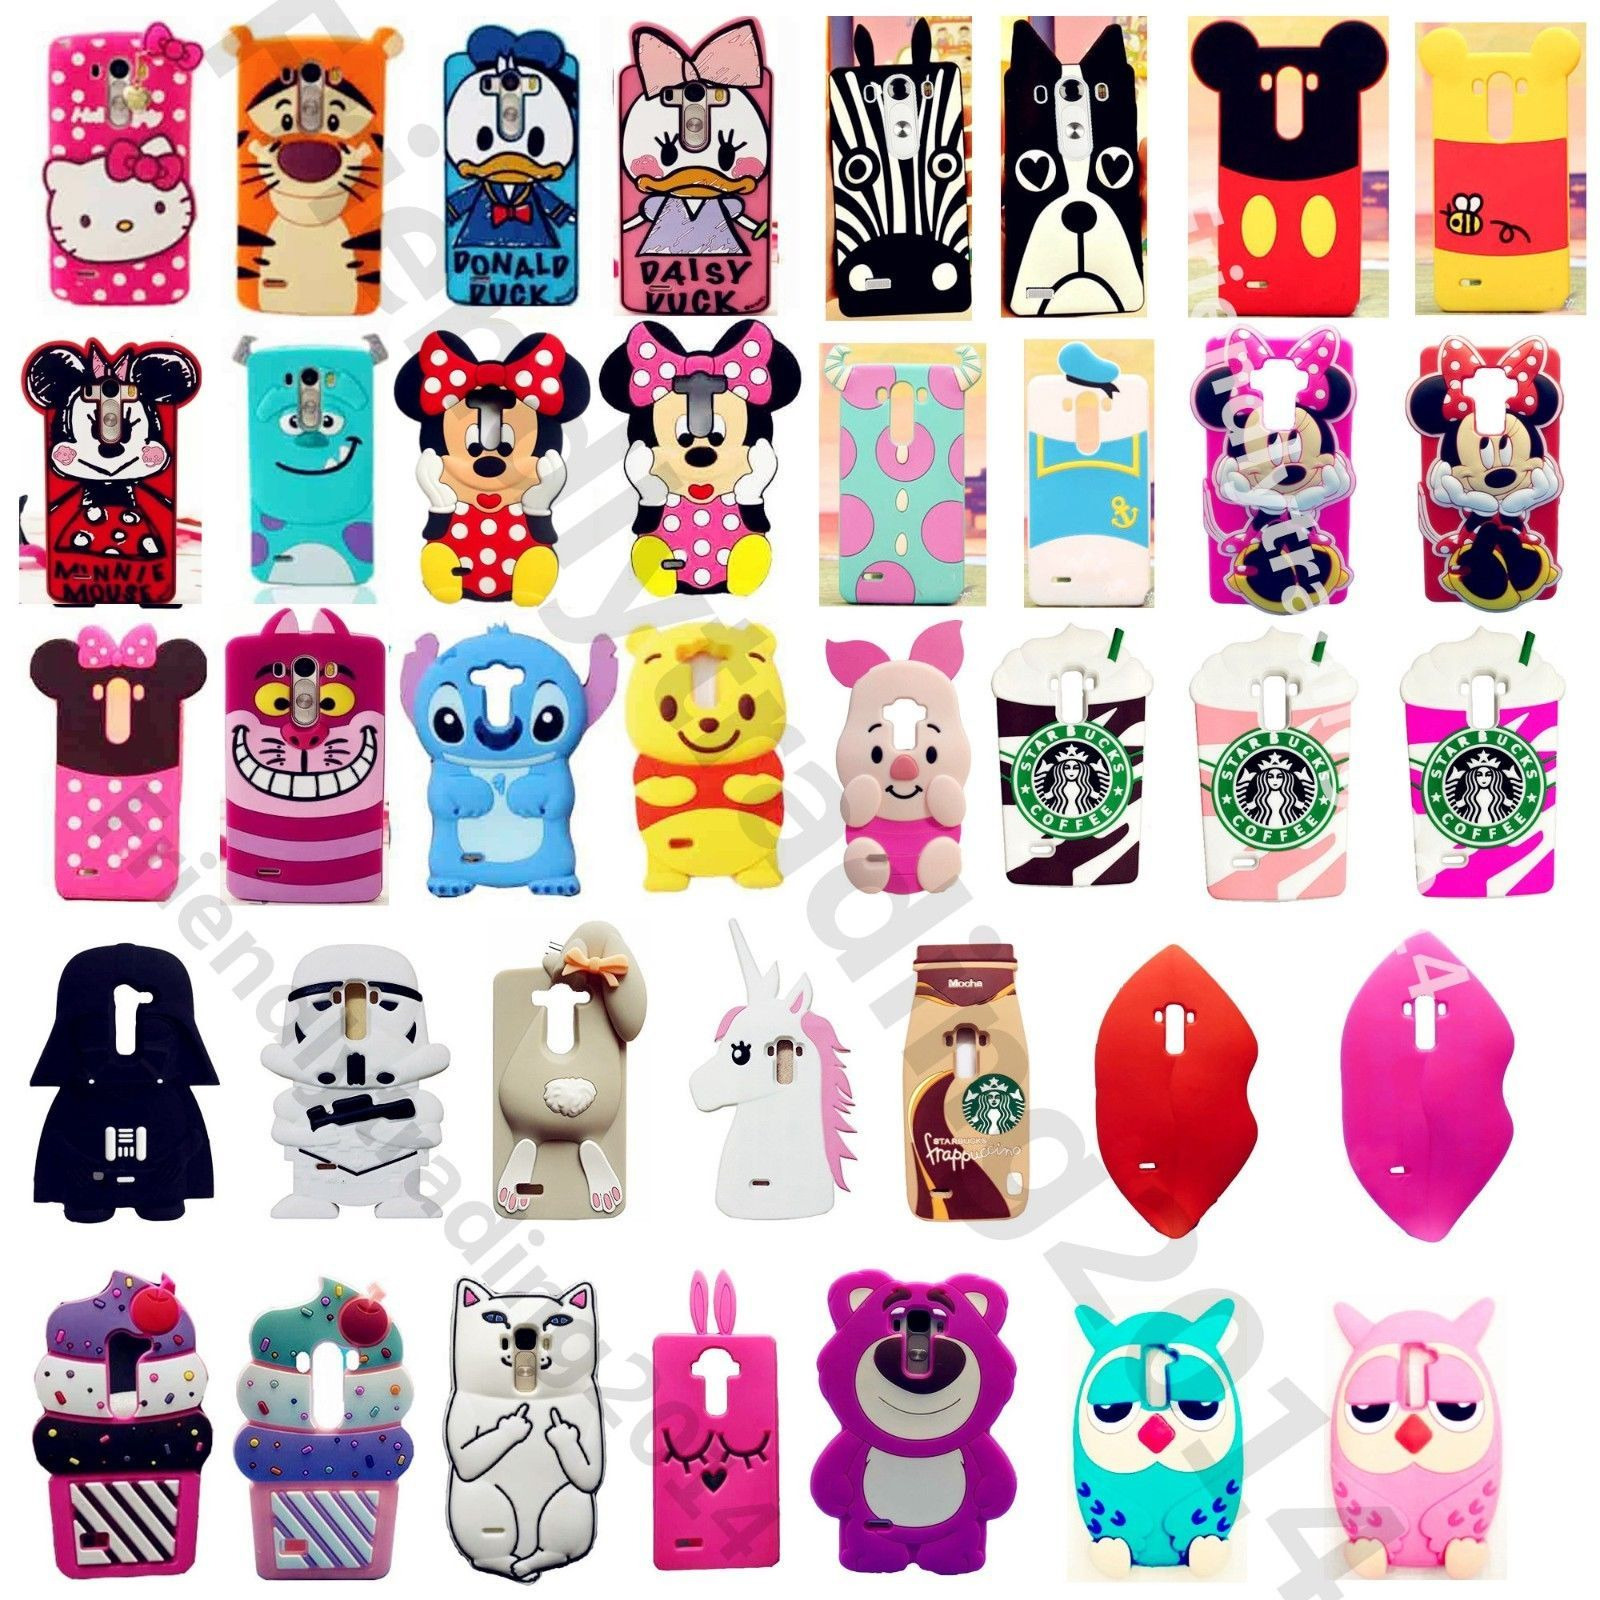 new styles dc62d 5c1ad 3D Cartoon Soft Silicone Case Cover For Lg G2/G2 Mini/Ll80/90/70 ...